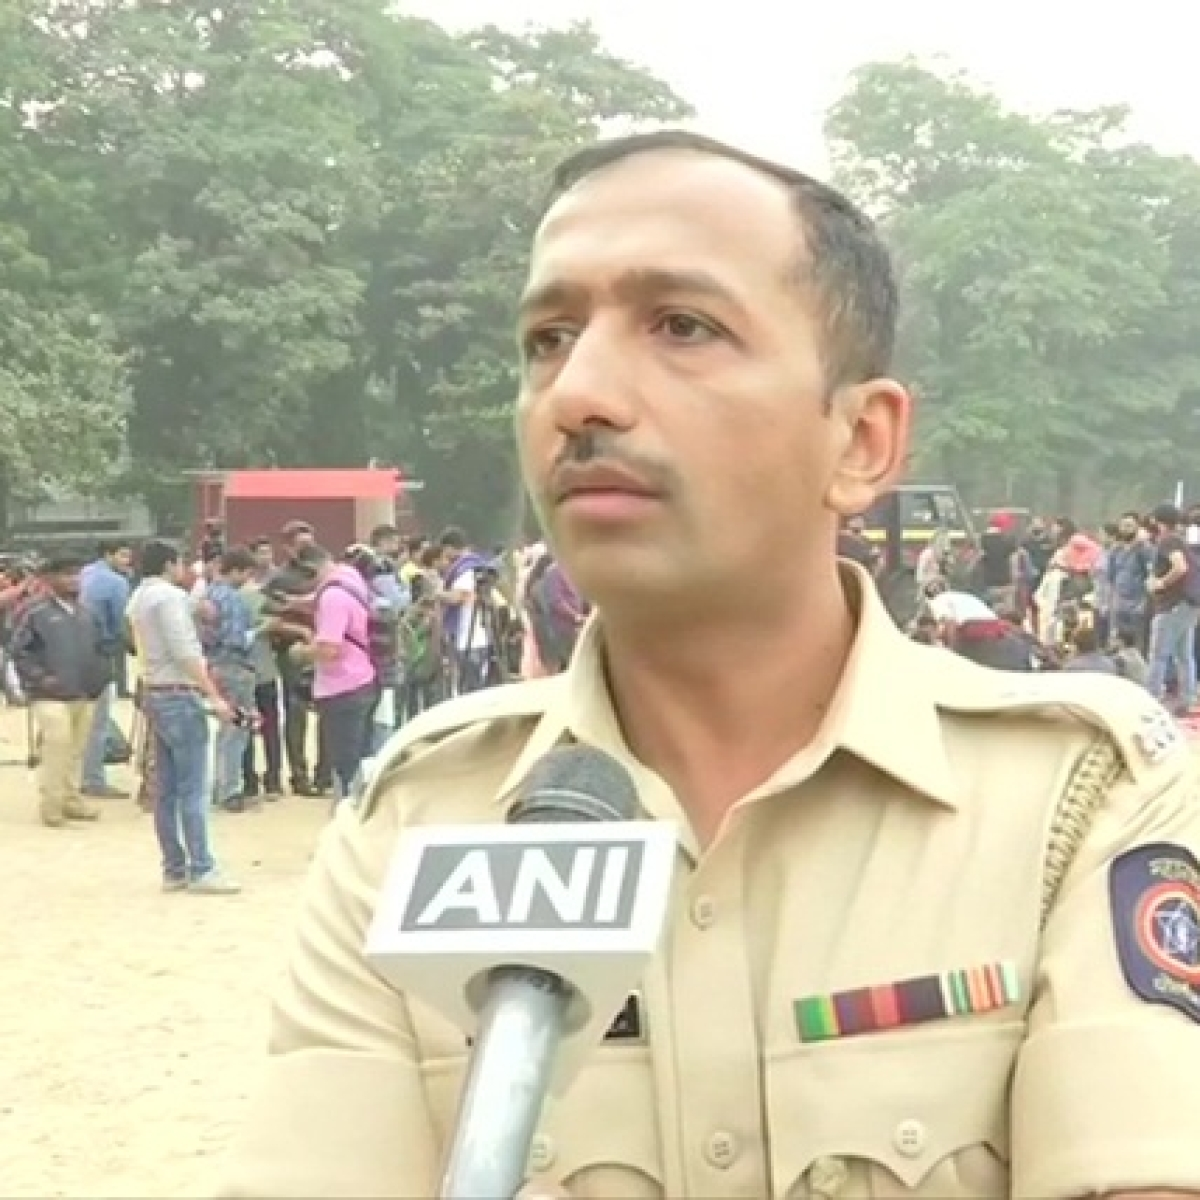 'Better toilets and water facilities': Mumbai cop politely explains why protesters were moved from Gateway to Azad Maidan